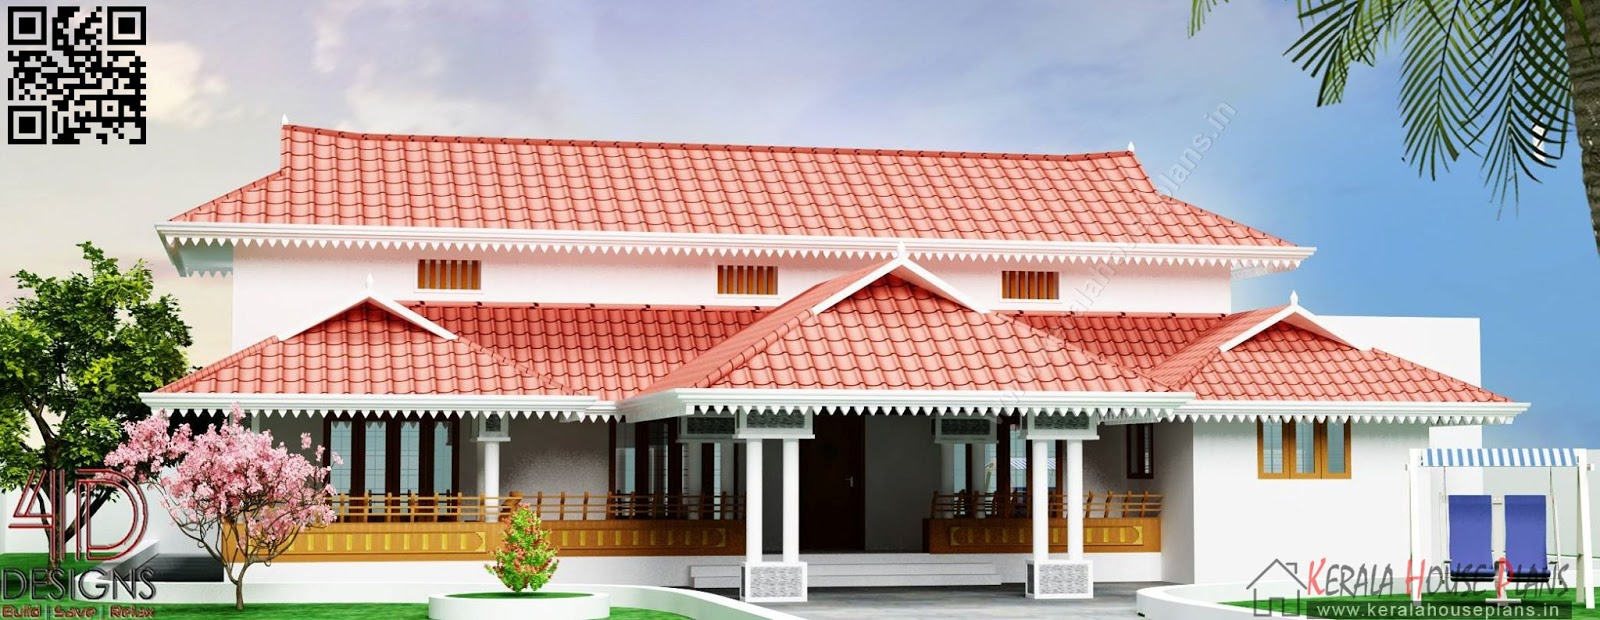 Kerala traditional home design elevation and floor details for Kerala traditional home plans with photos